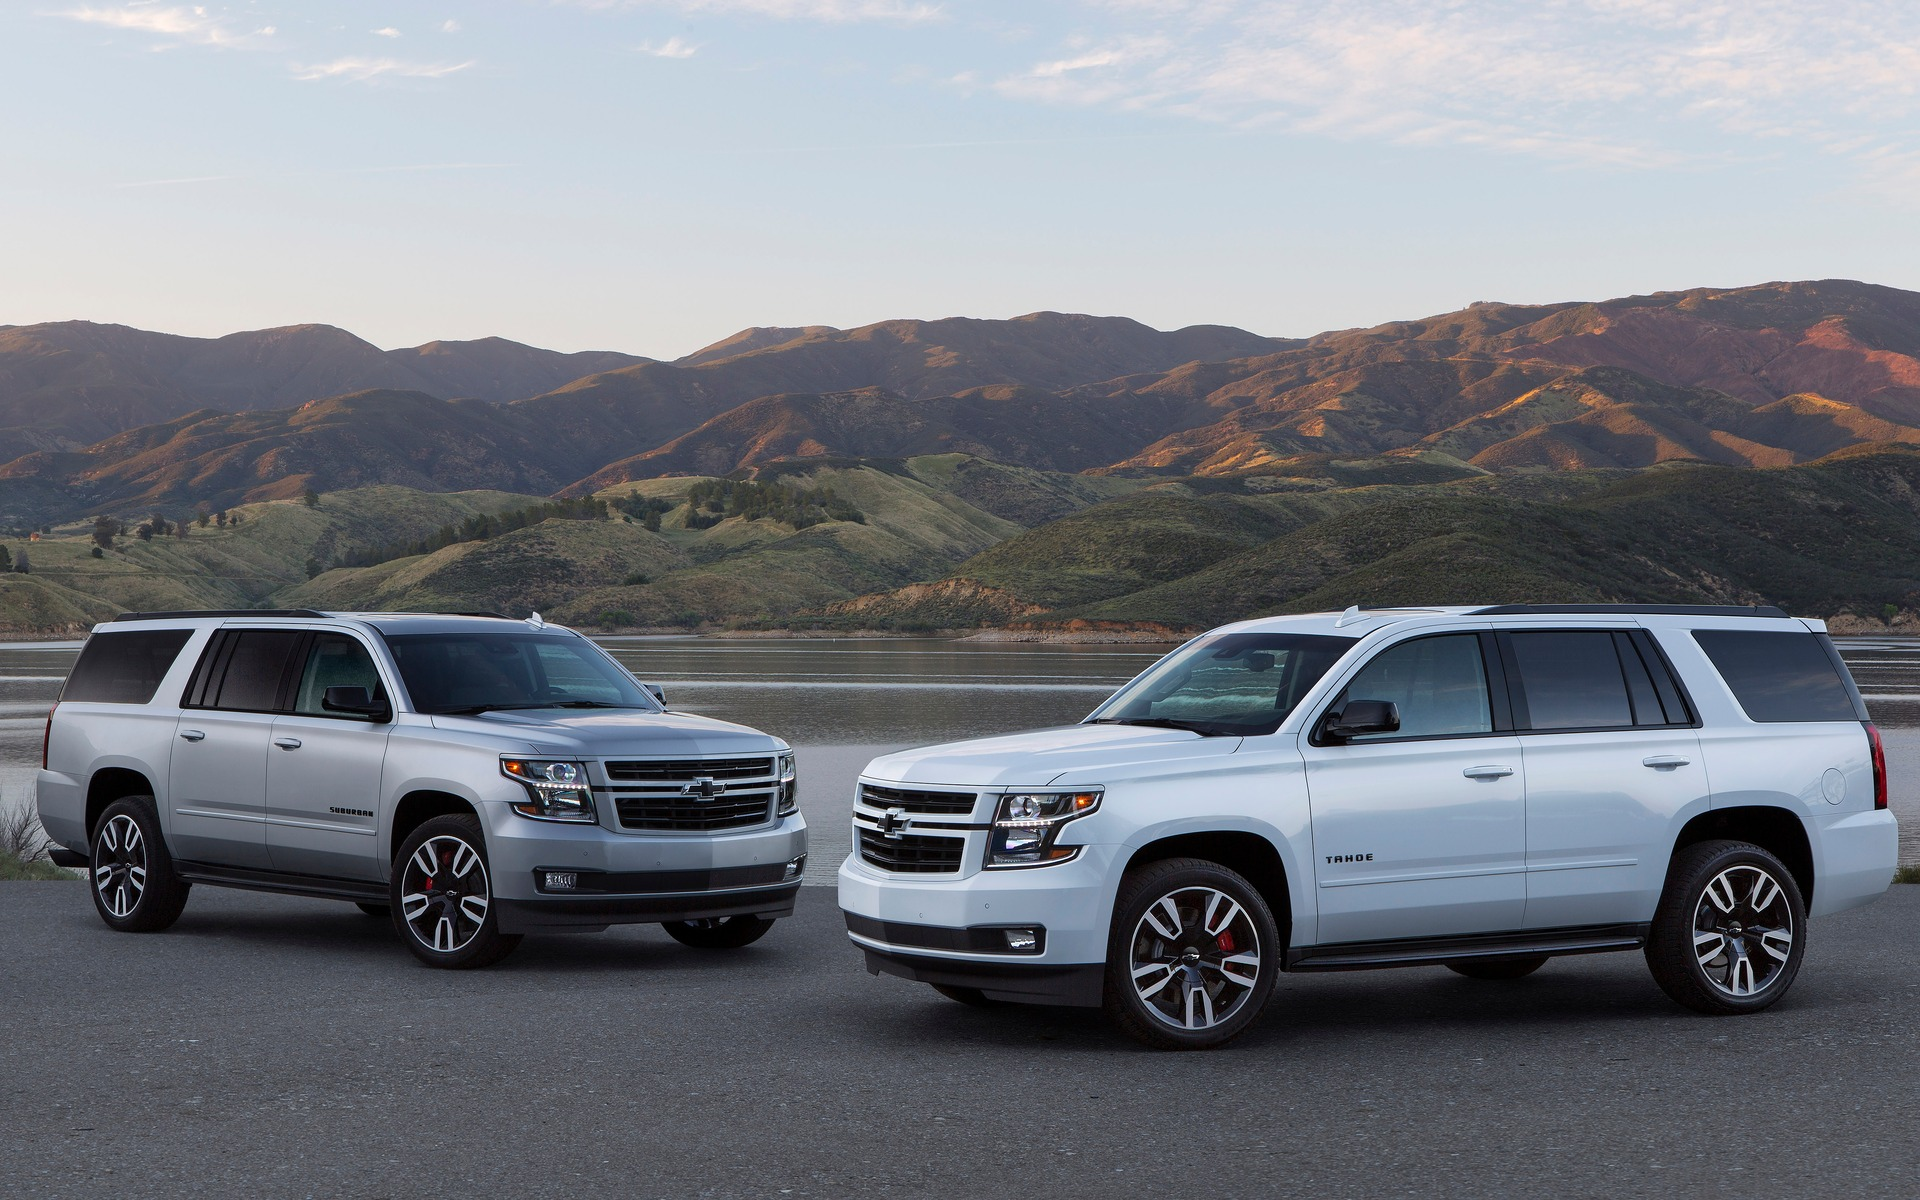 2020 Chevy Suburban: Redesign, News, Options, Release >> Gm S Full Size Suvs To Be Redesigned For 2021 The Car Guide